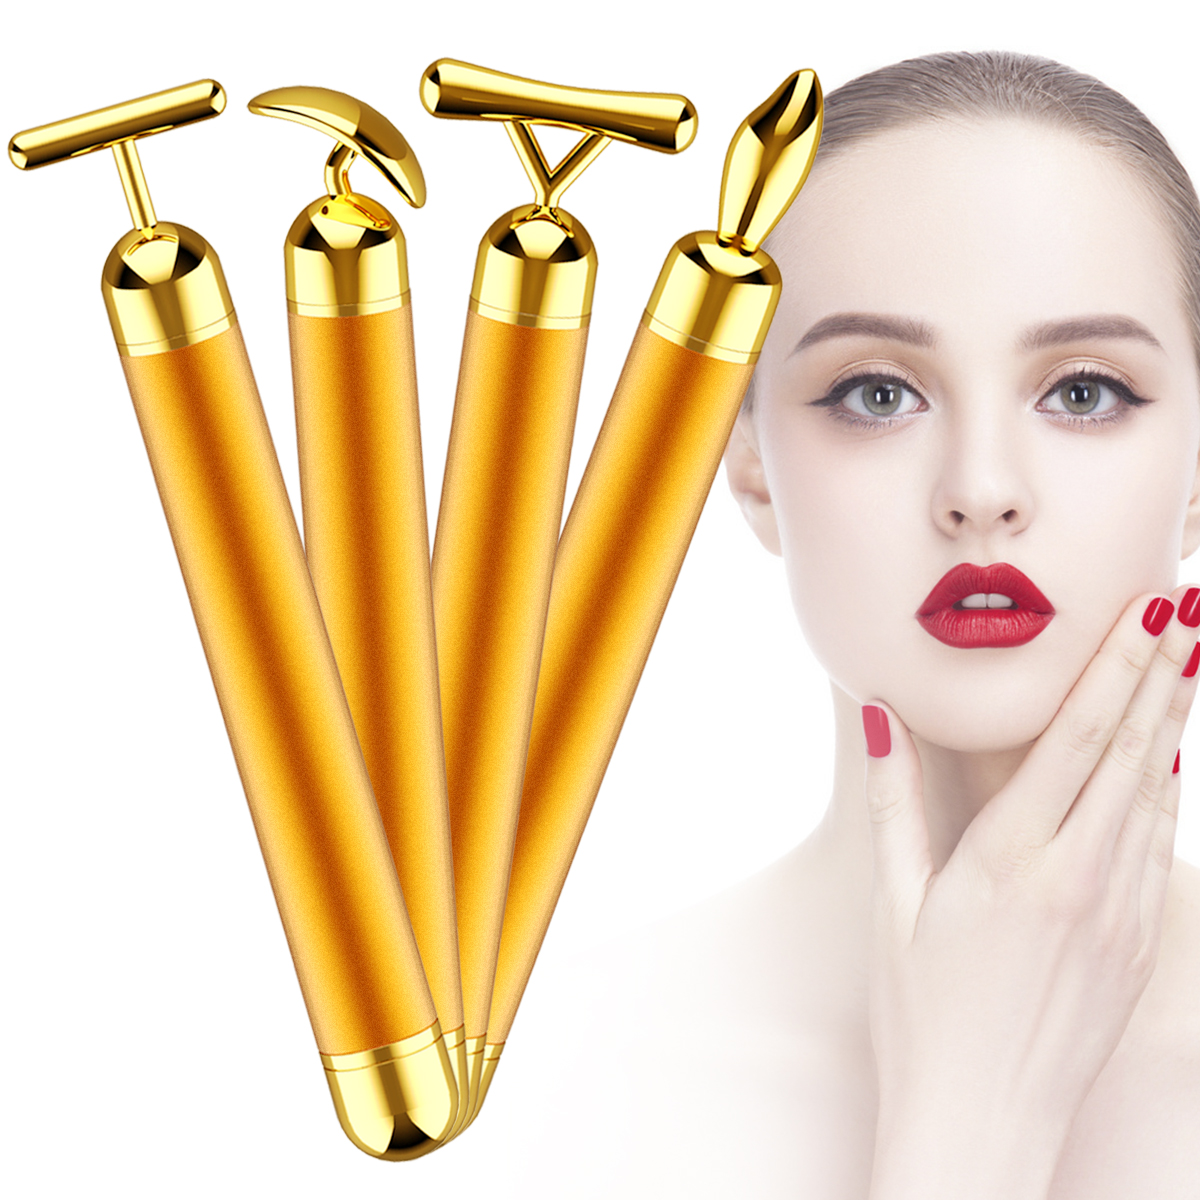 4-In-1 24k Gold Beauty Bar Anti-Wrinkle Anti-Aging Micro Vibrating Face Massager Skin Care Electric Stick Massage Tighten Skin